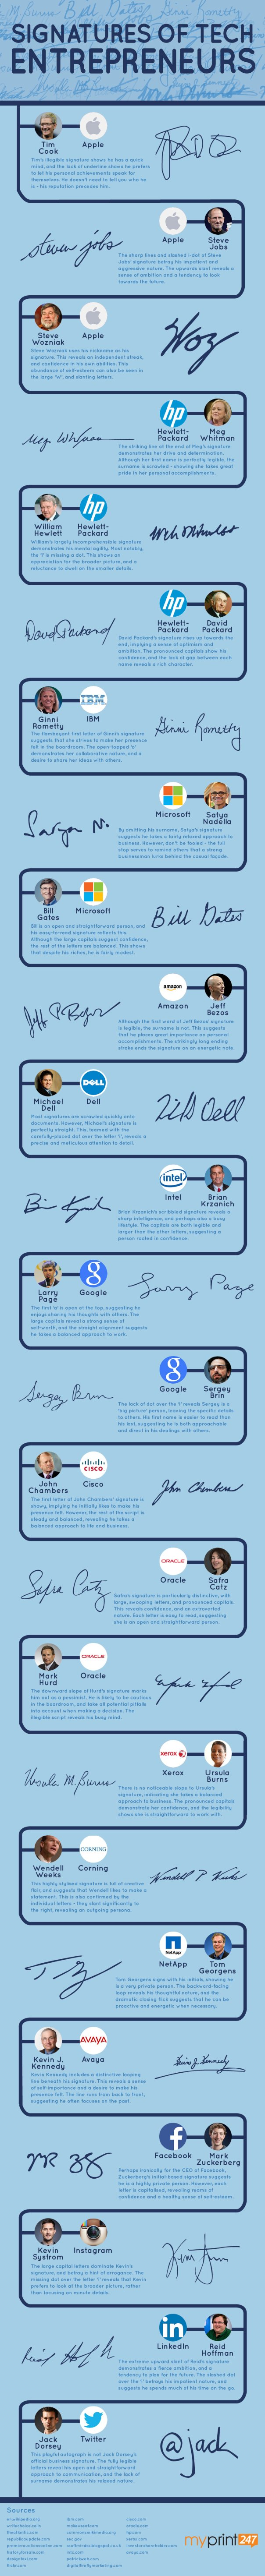 Famous Signatures Infographic